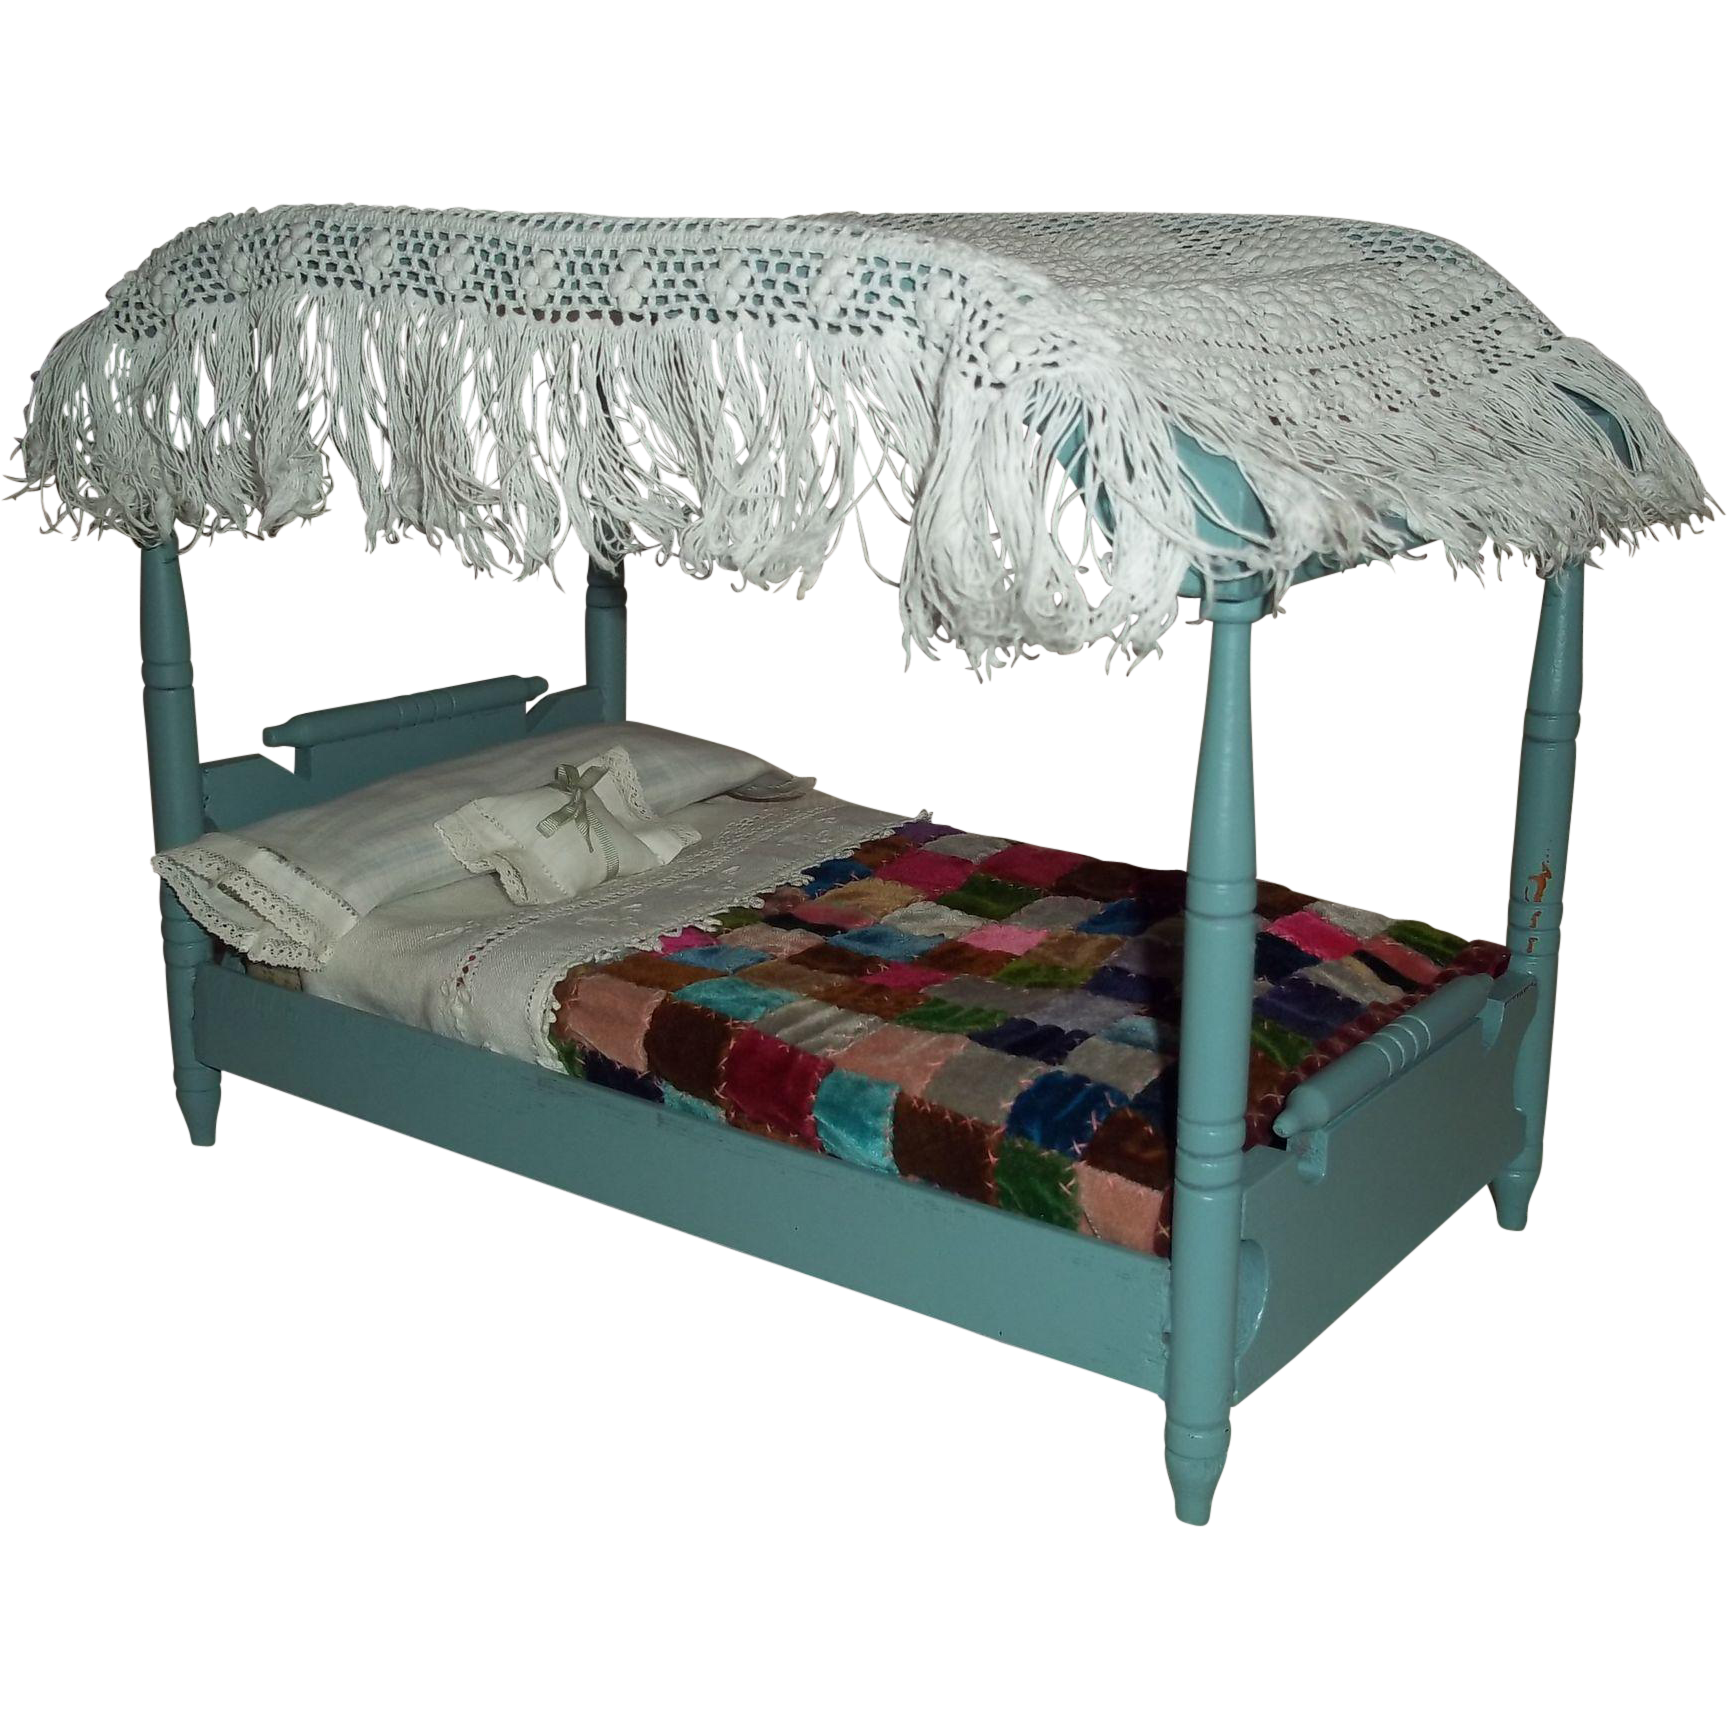 mid 20c canopied doll bed and dressings for 8 11 quot dolls canopied bed romantic canopy beds images about canopy bed